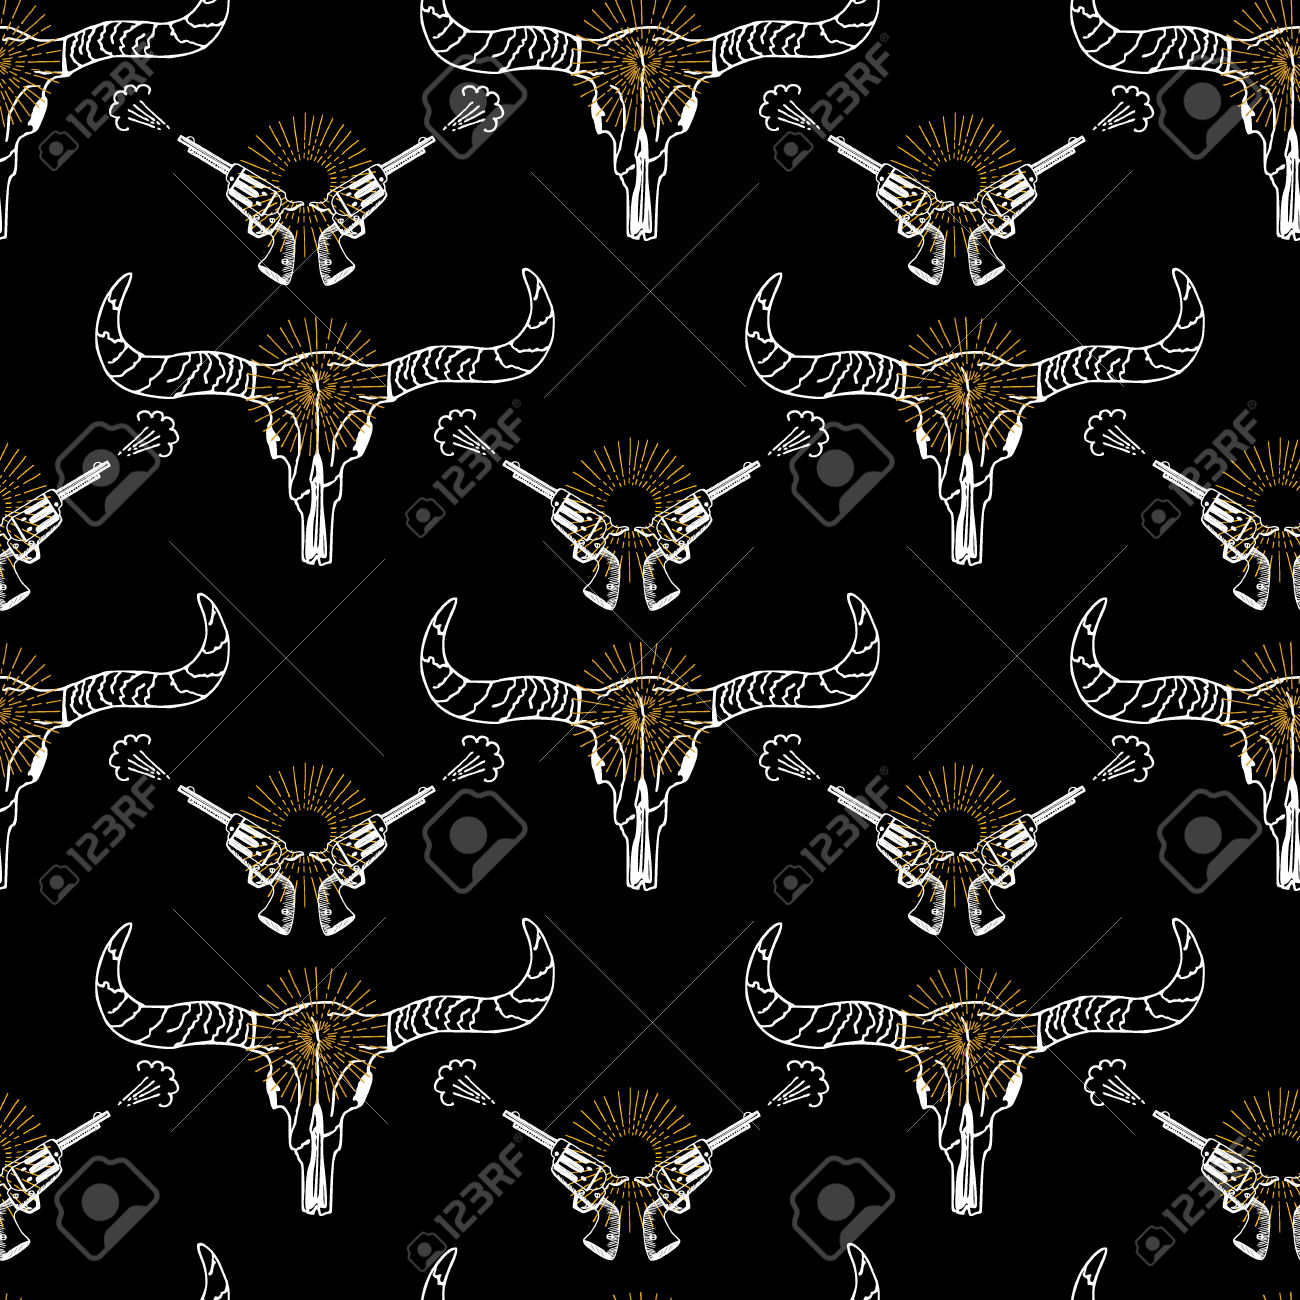 Longhorn Revolver Pics, Weapons Collection